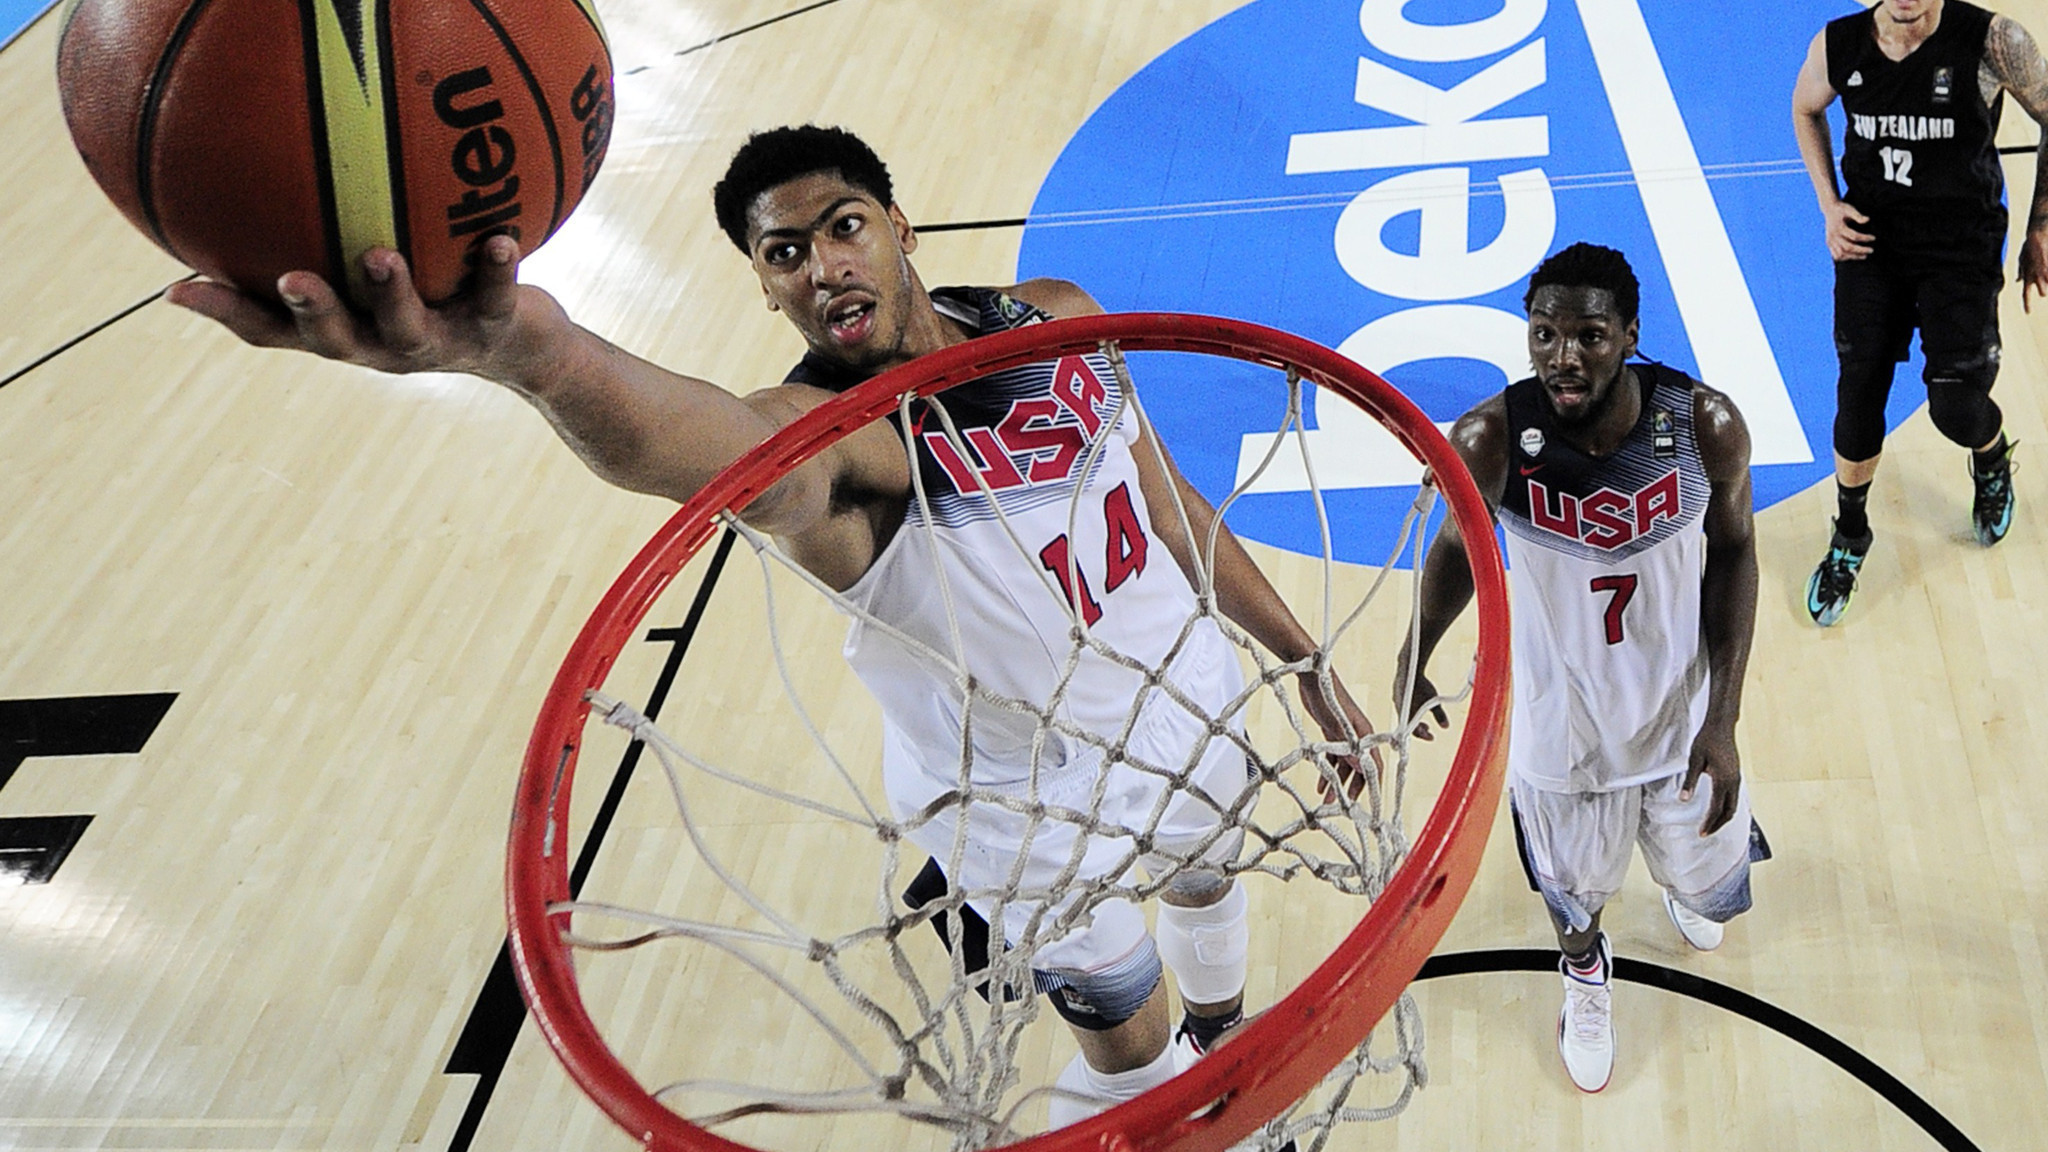 Anthony Davis leads U.S. past New Zealand at Basketball World Cup